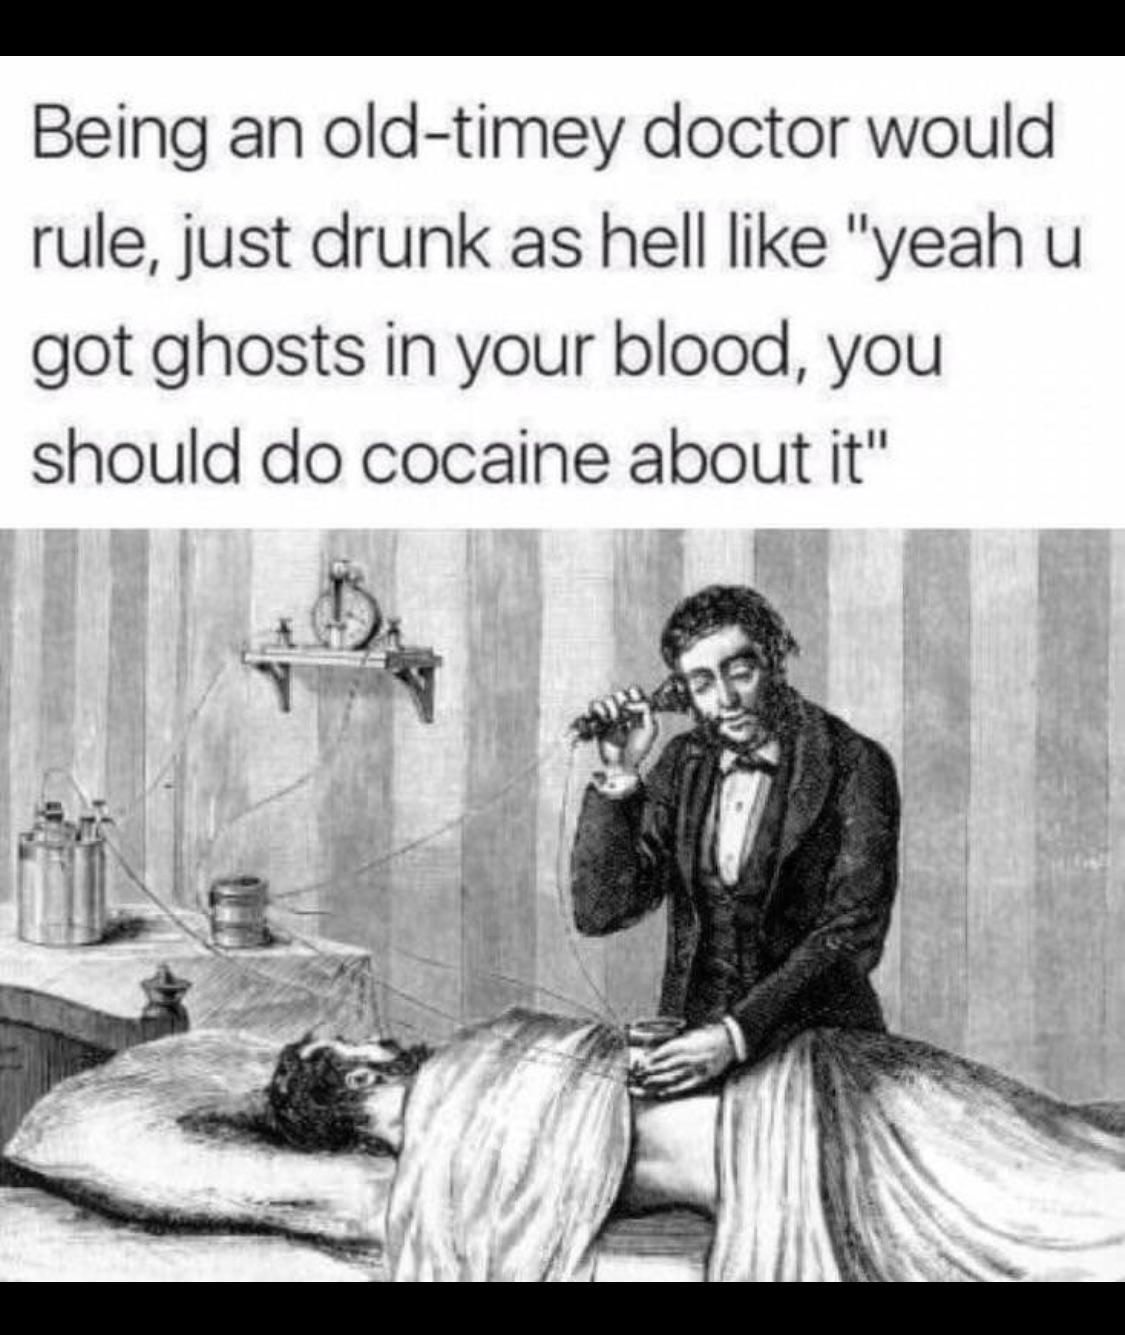 Doctors back in the day